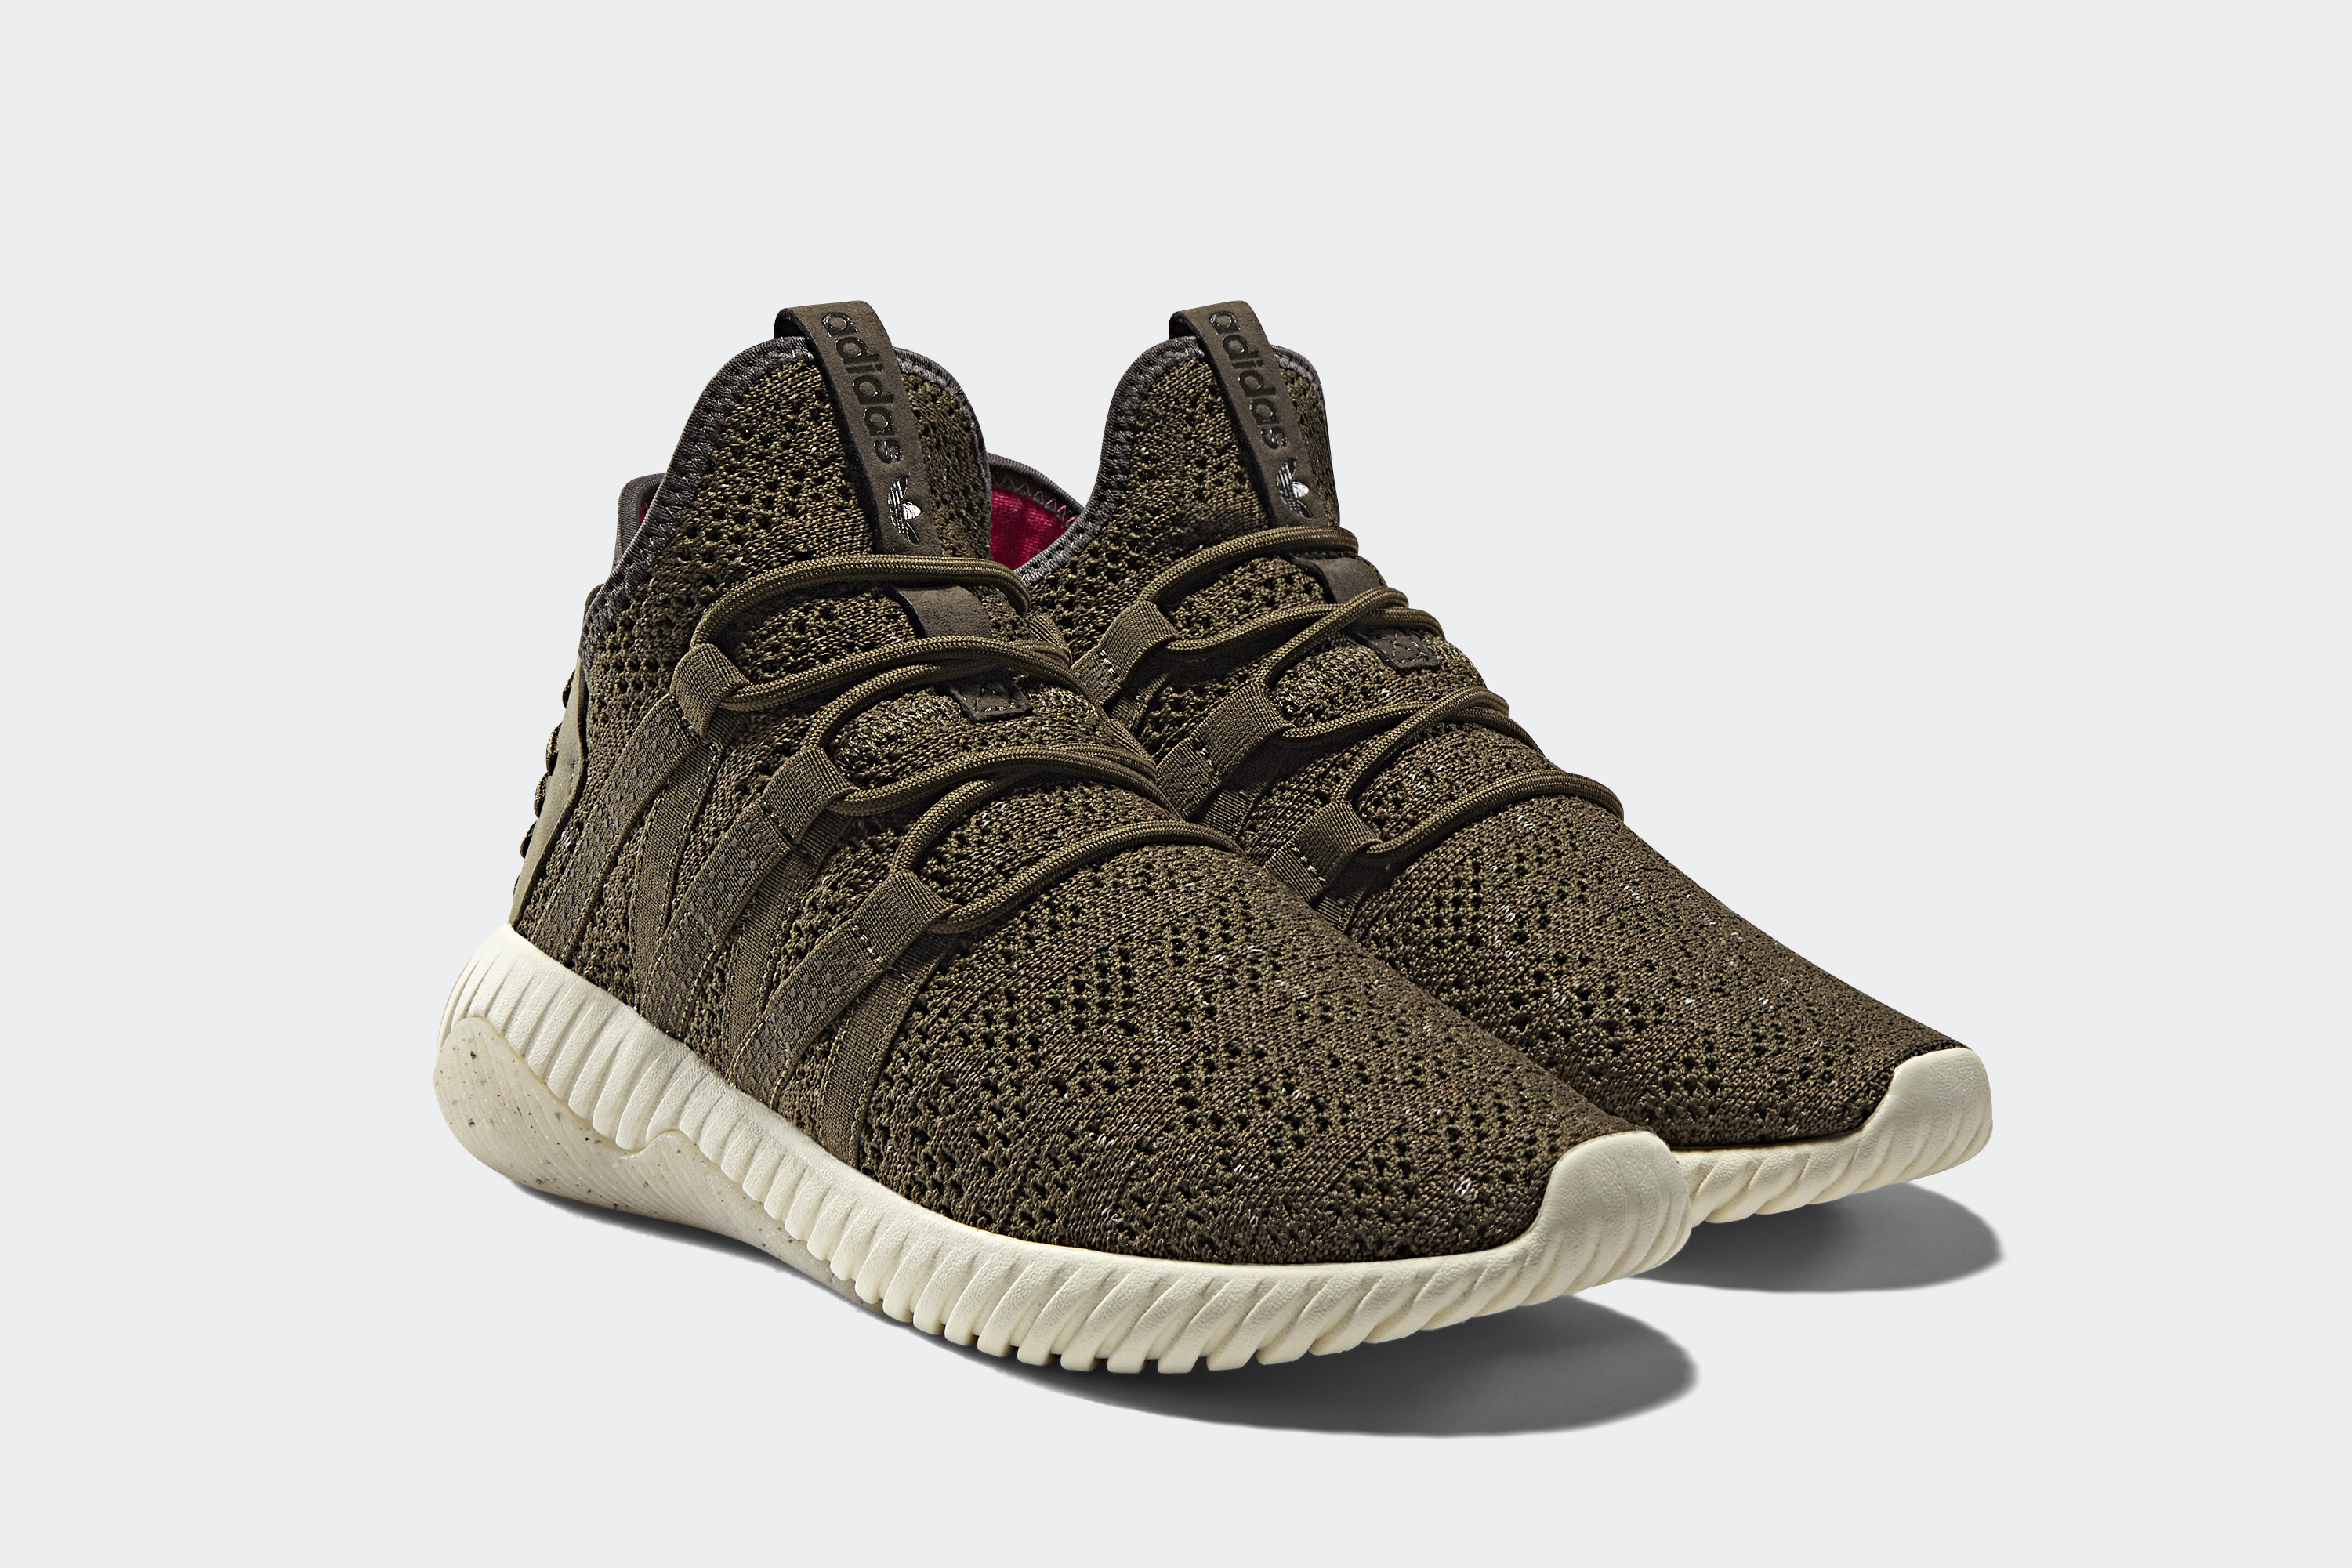 45b0ded02e48d0 adidas   Kicks Off Court   Lifestyle   Release Reminder ...